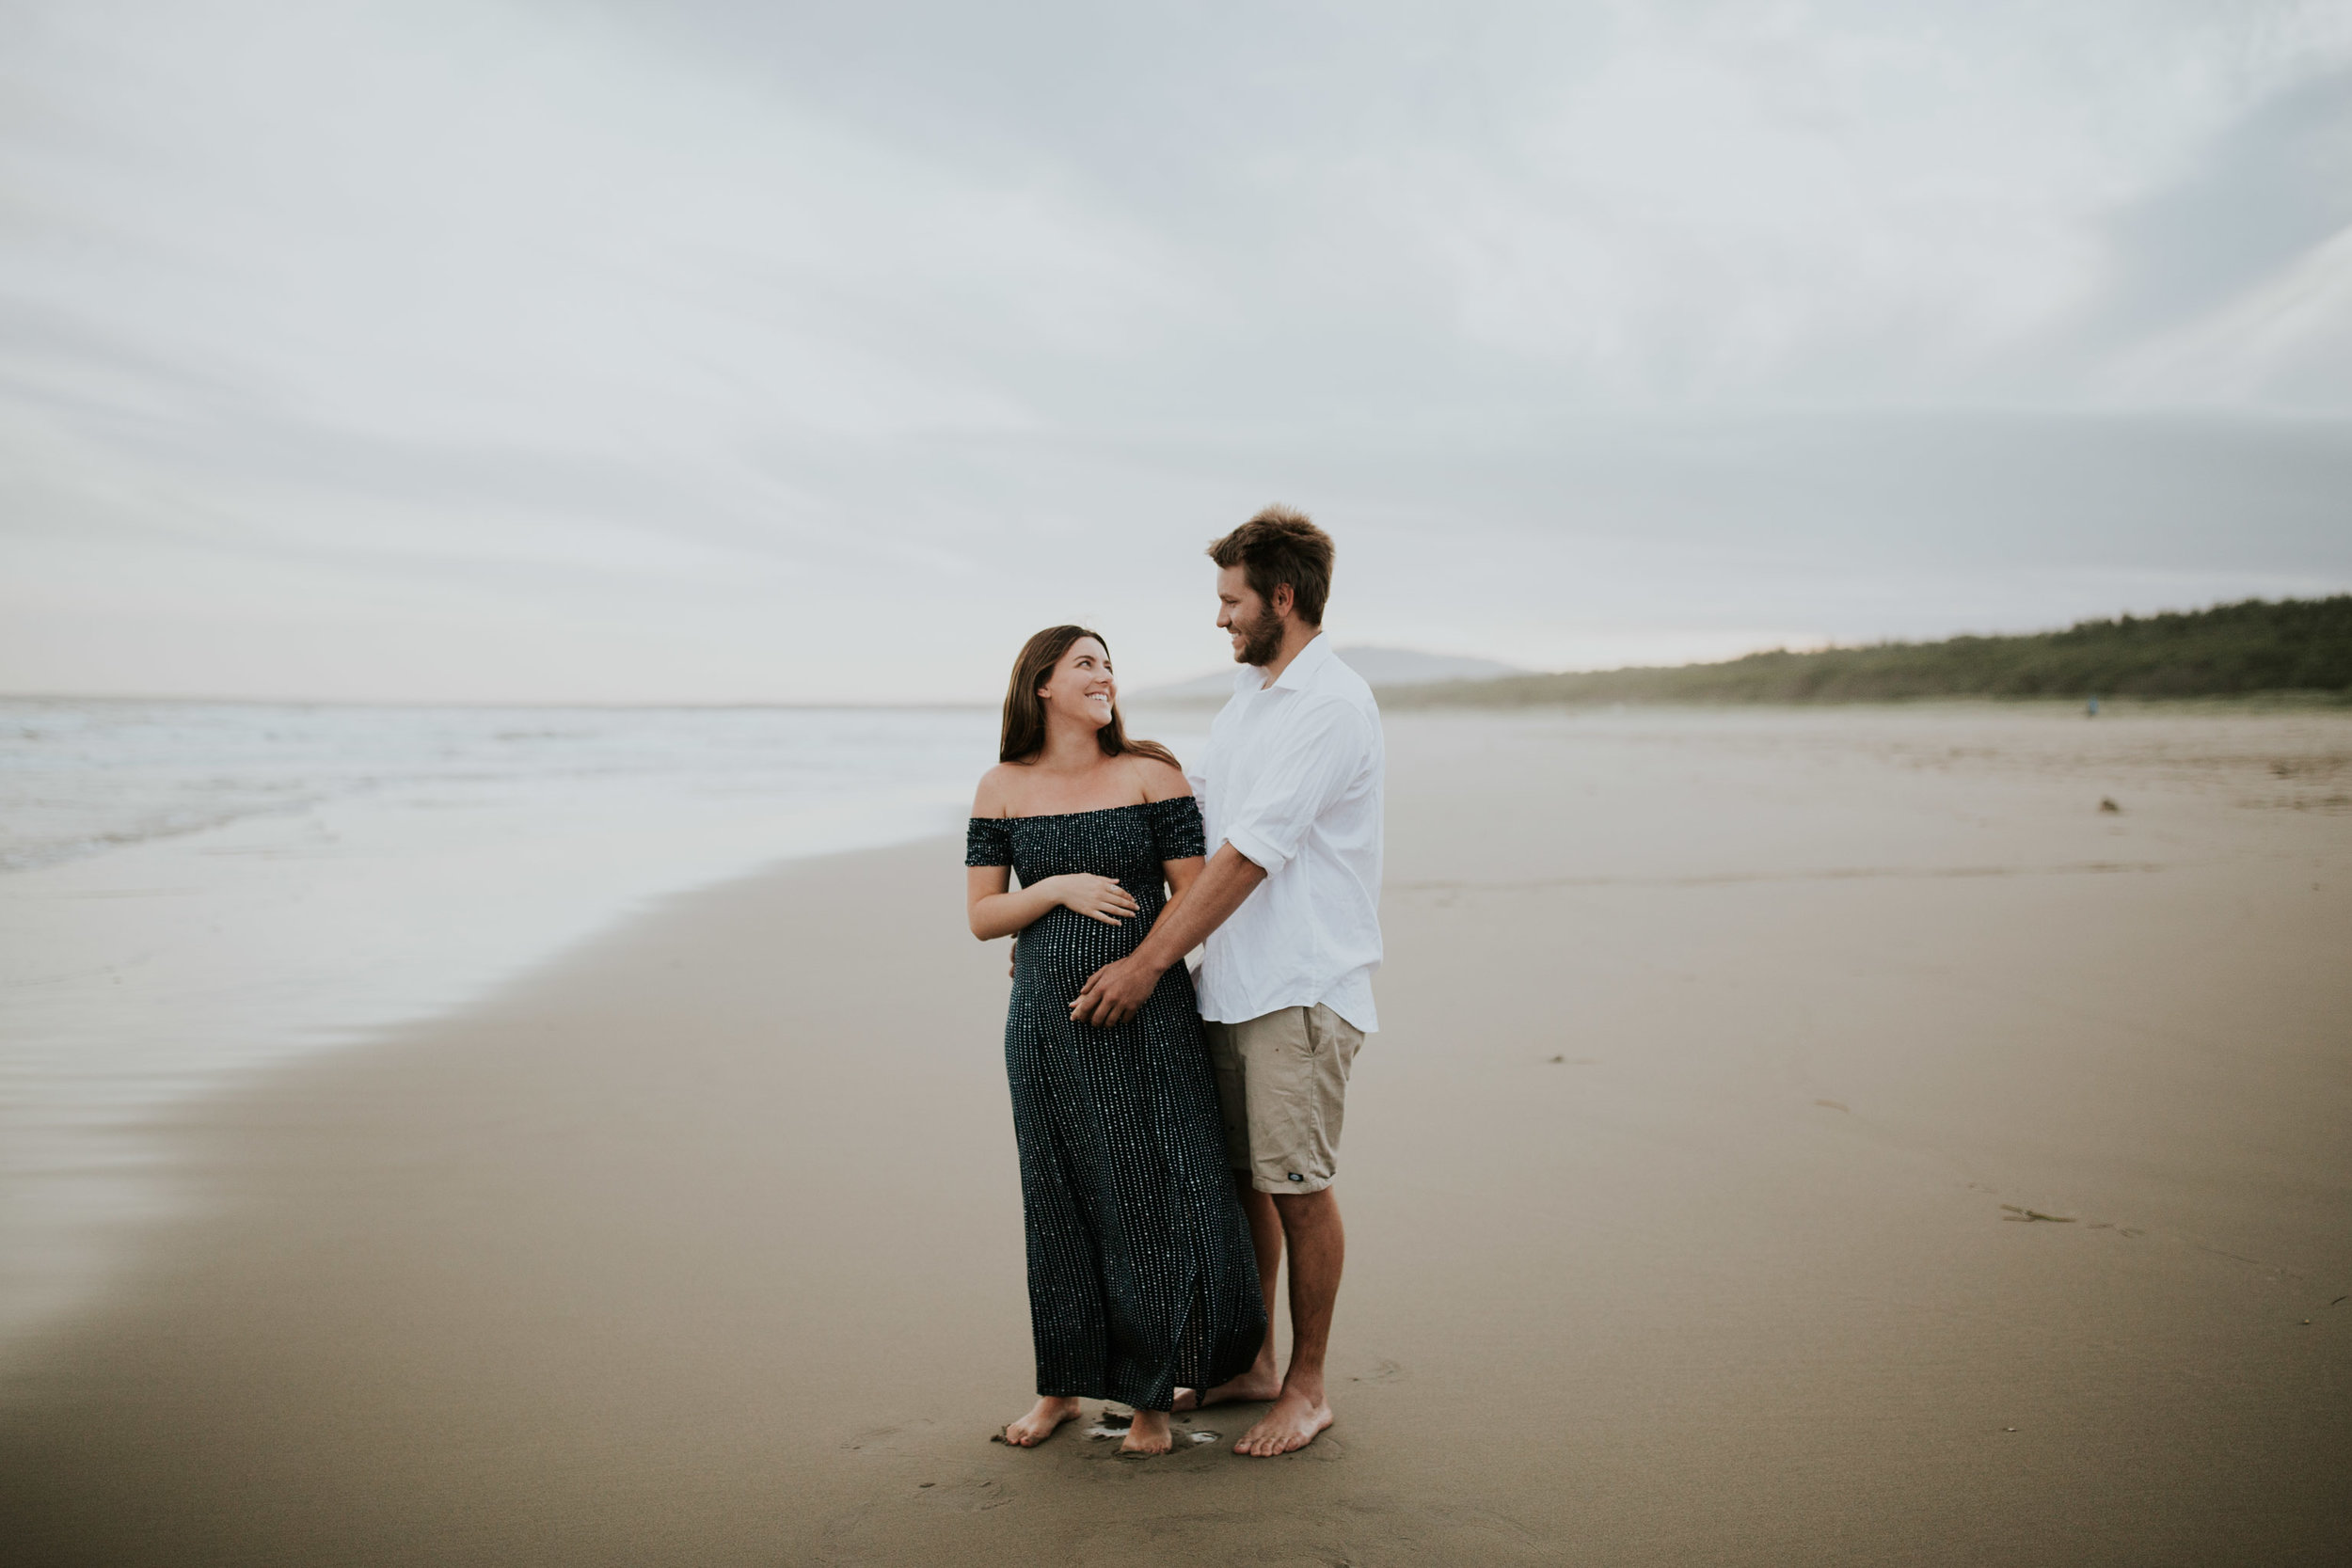 AMY+ANDREW+SHOALHAVEN+HEADS+BEACH+MATERNITY+SESSION+CANDID-24.jpg